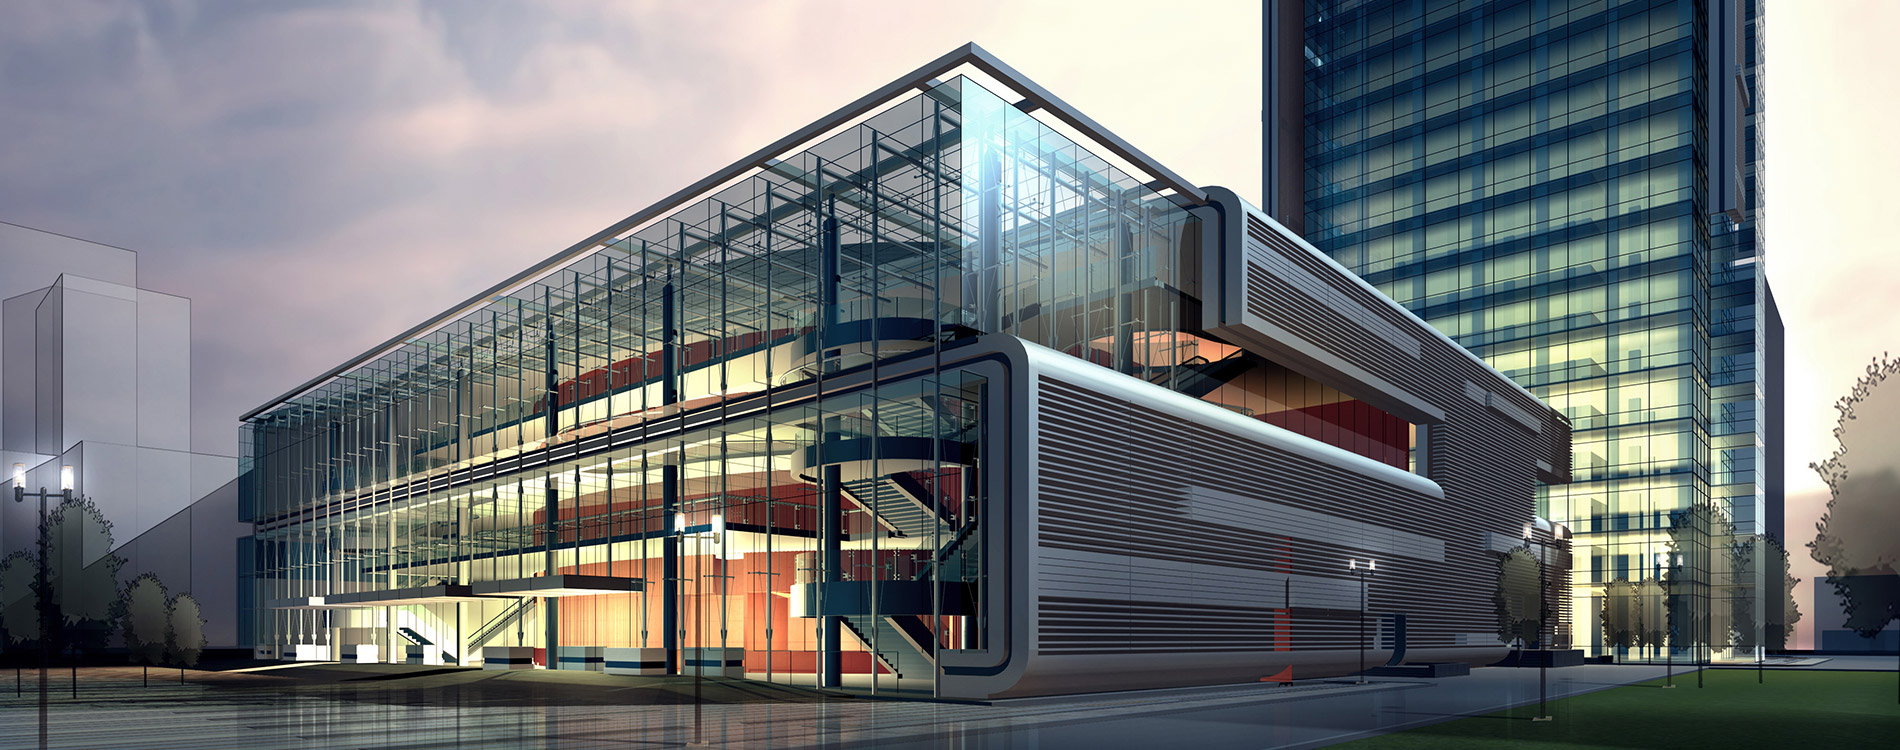 Rendering of a Modern Building